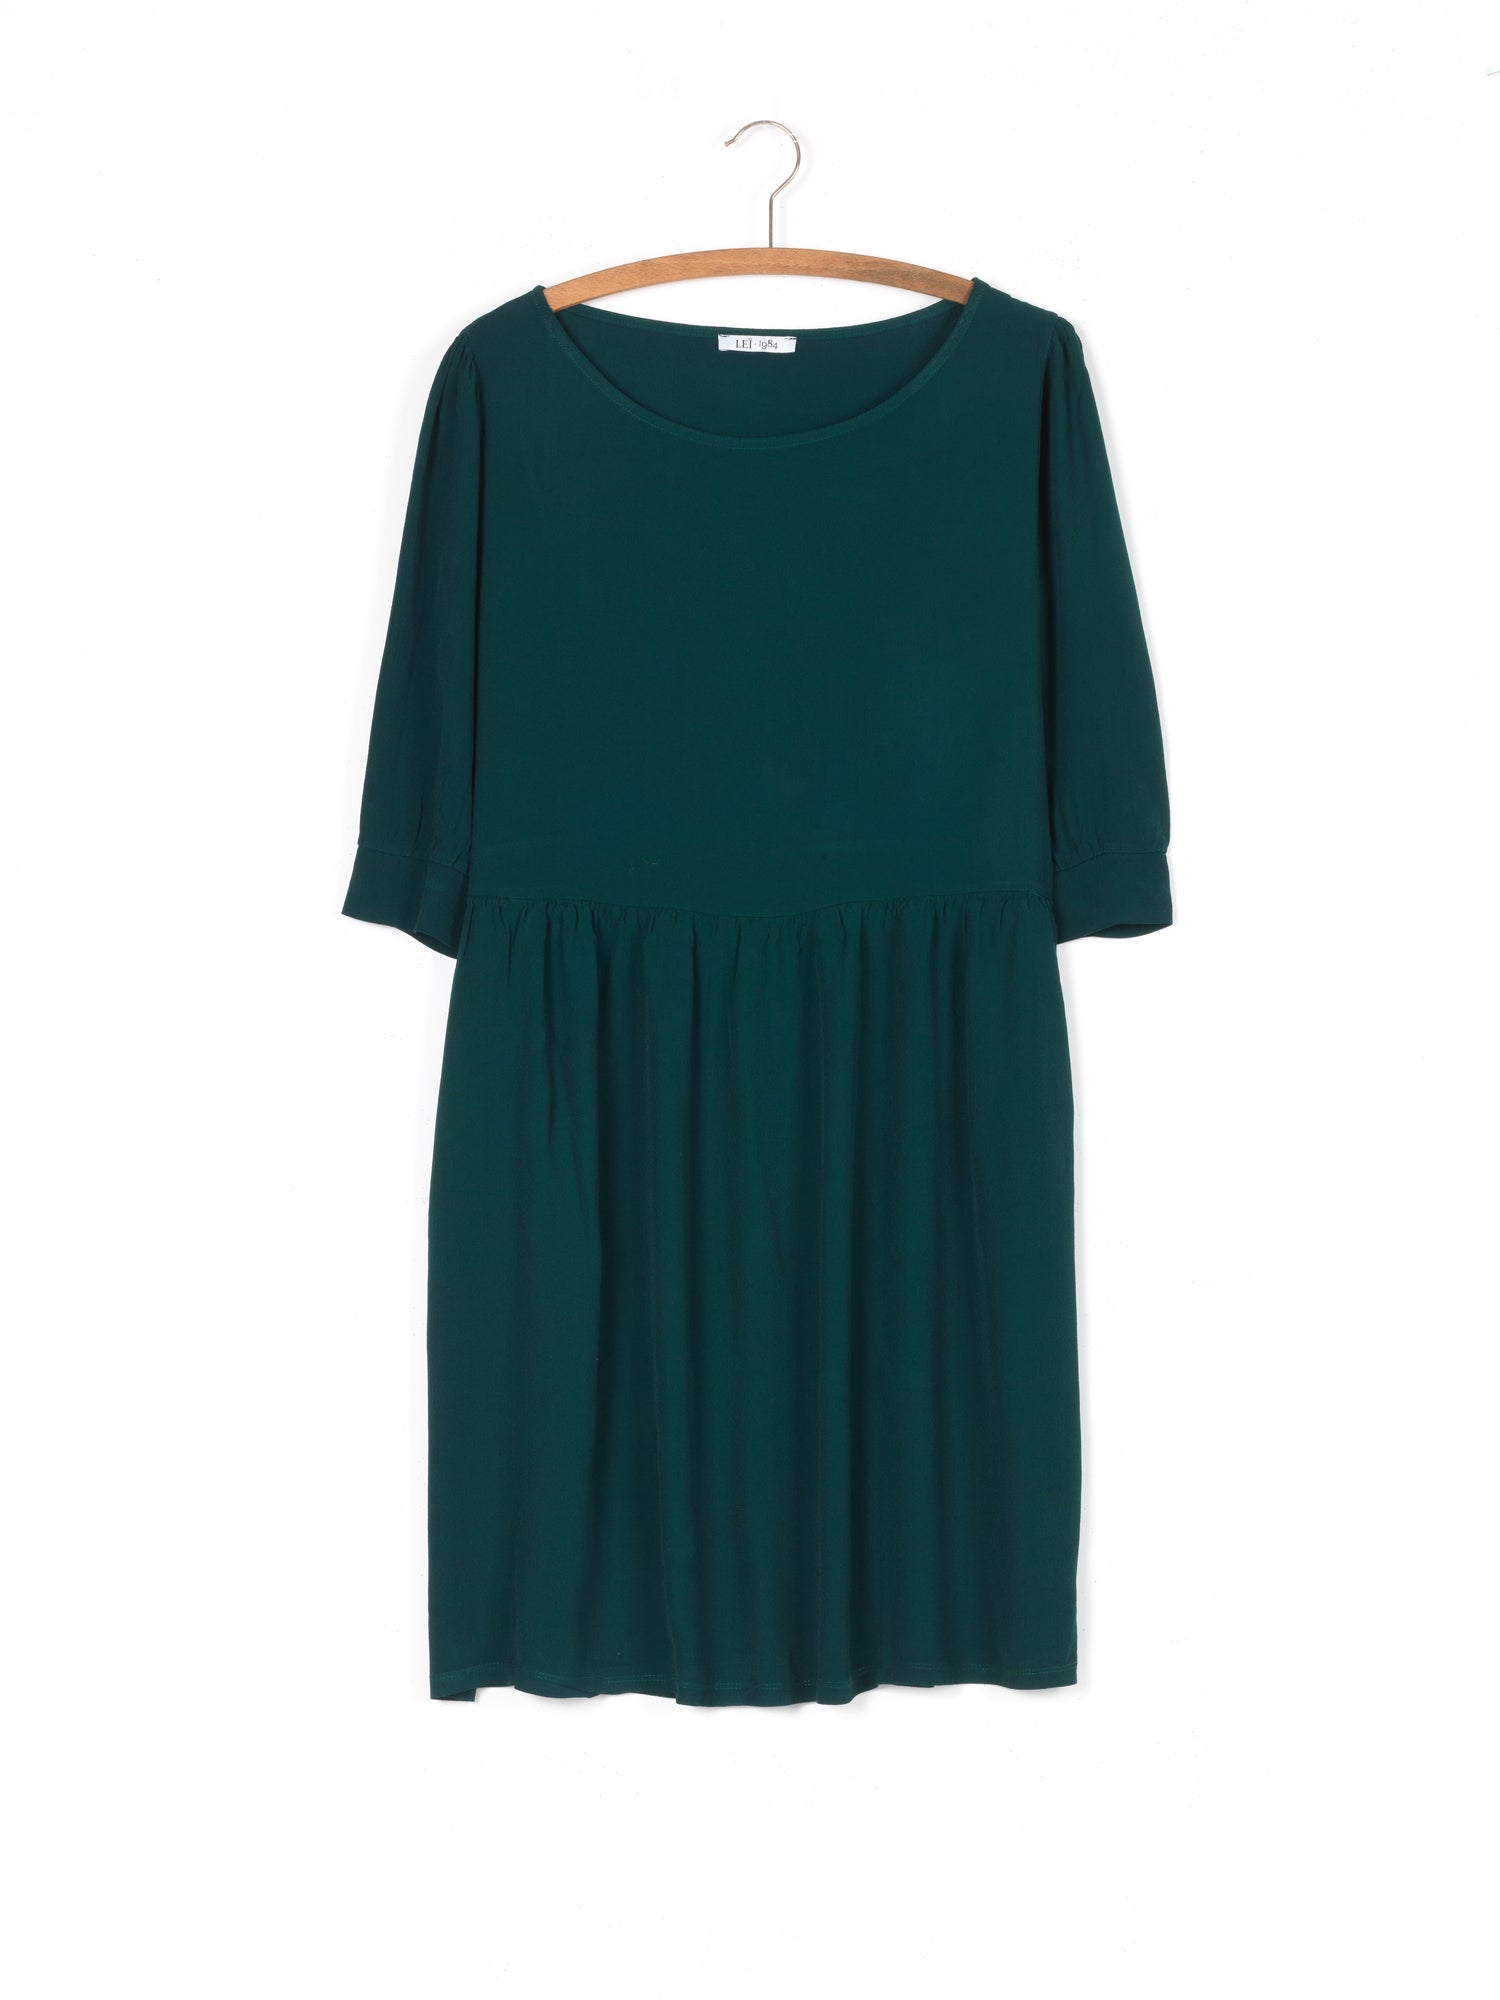 Image of Robe crêpe OCEANE 100€ -50%